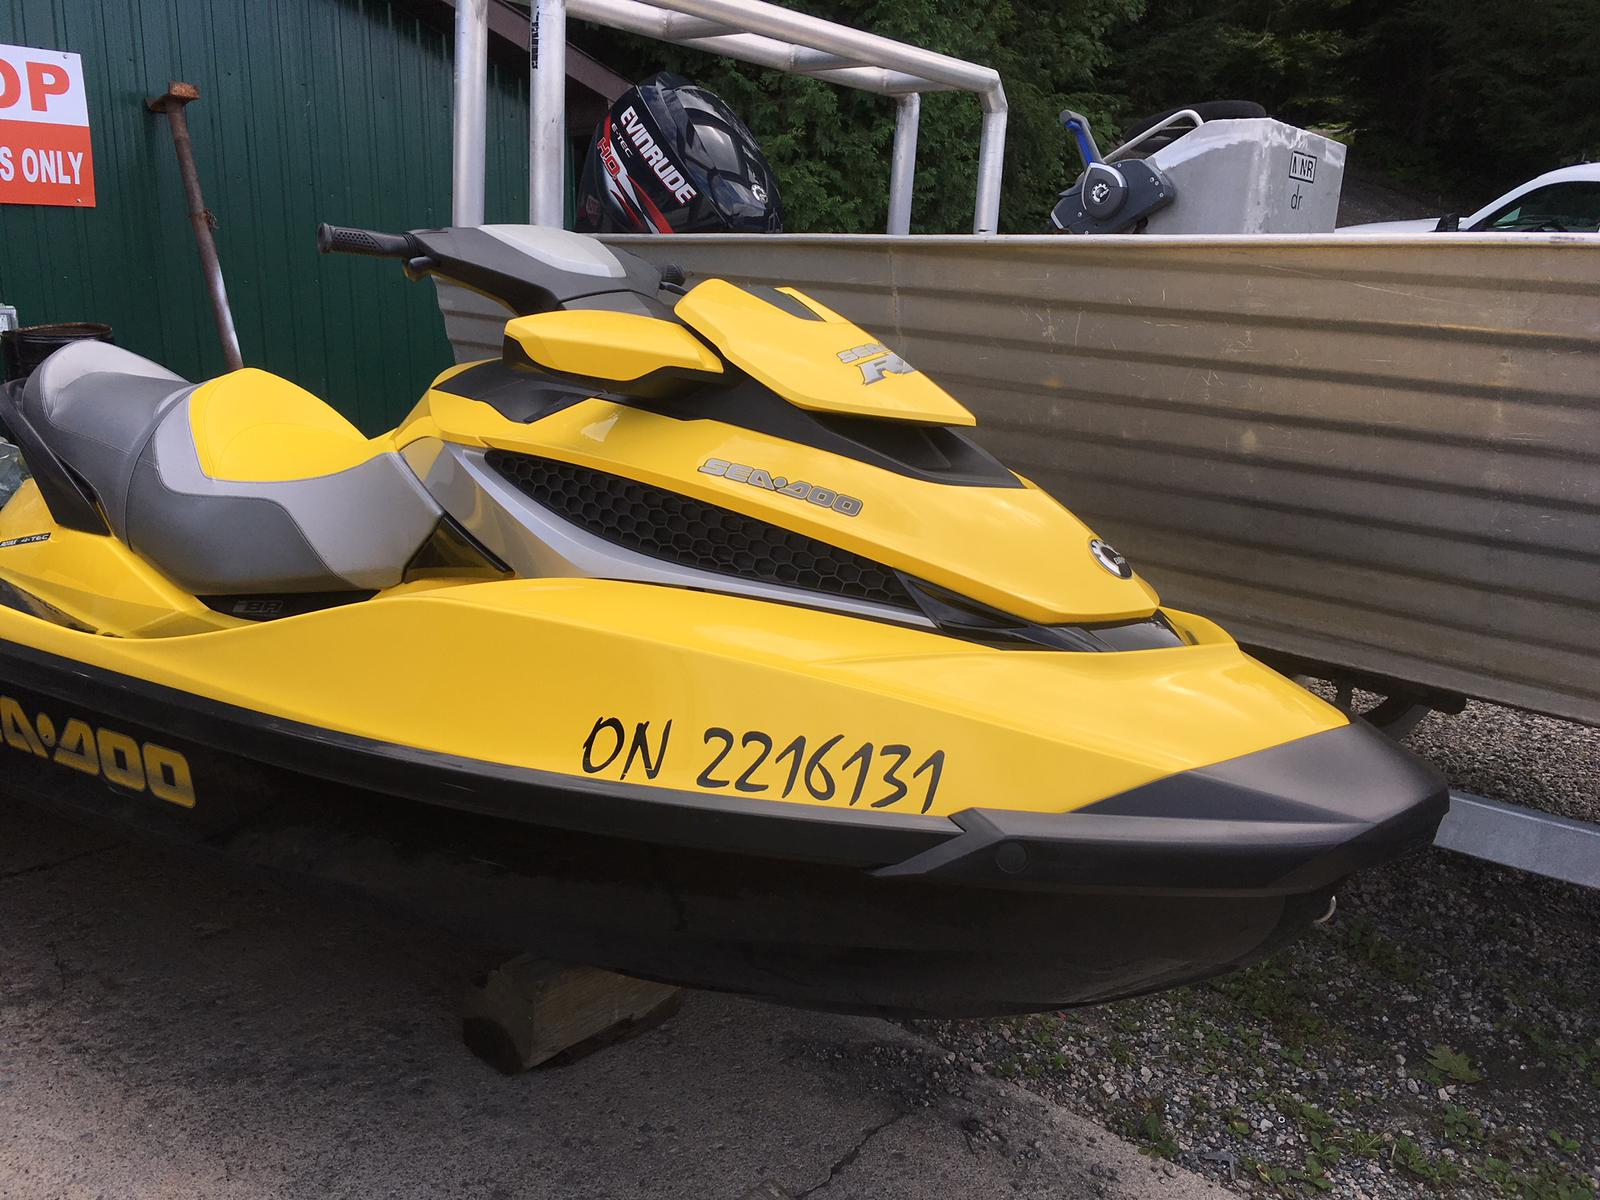 For Sale: 2010 Sea Doo Pwc Rxt 215 ft<br/>Harper Power Sports- Haliburton